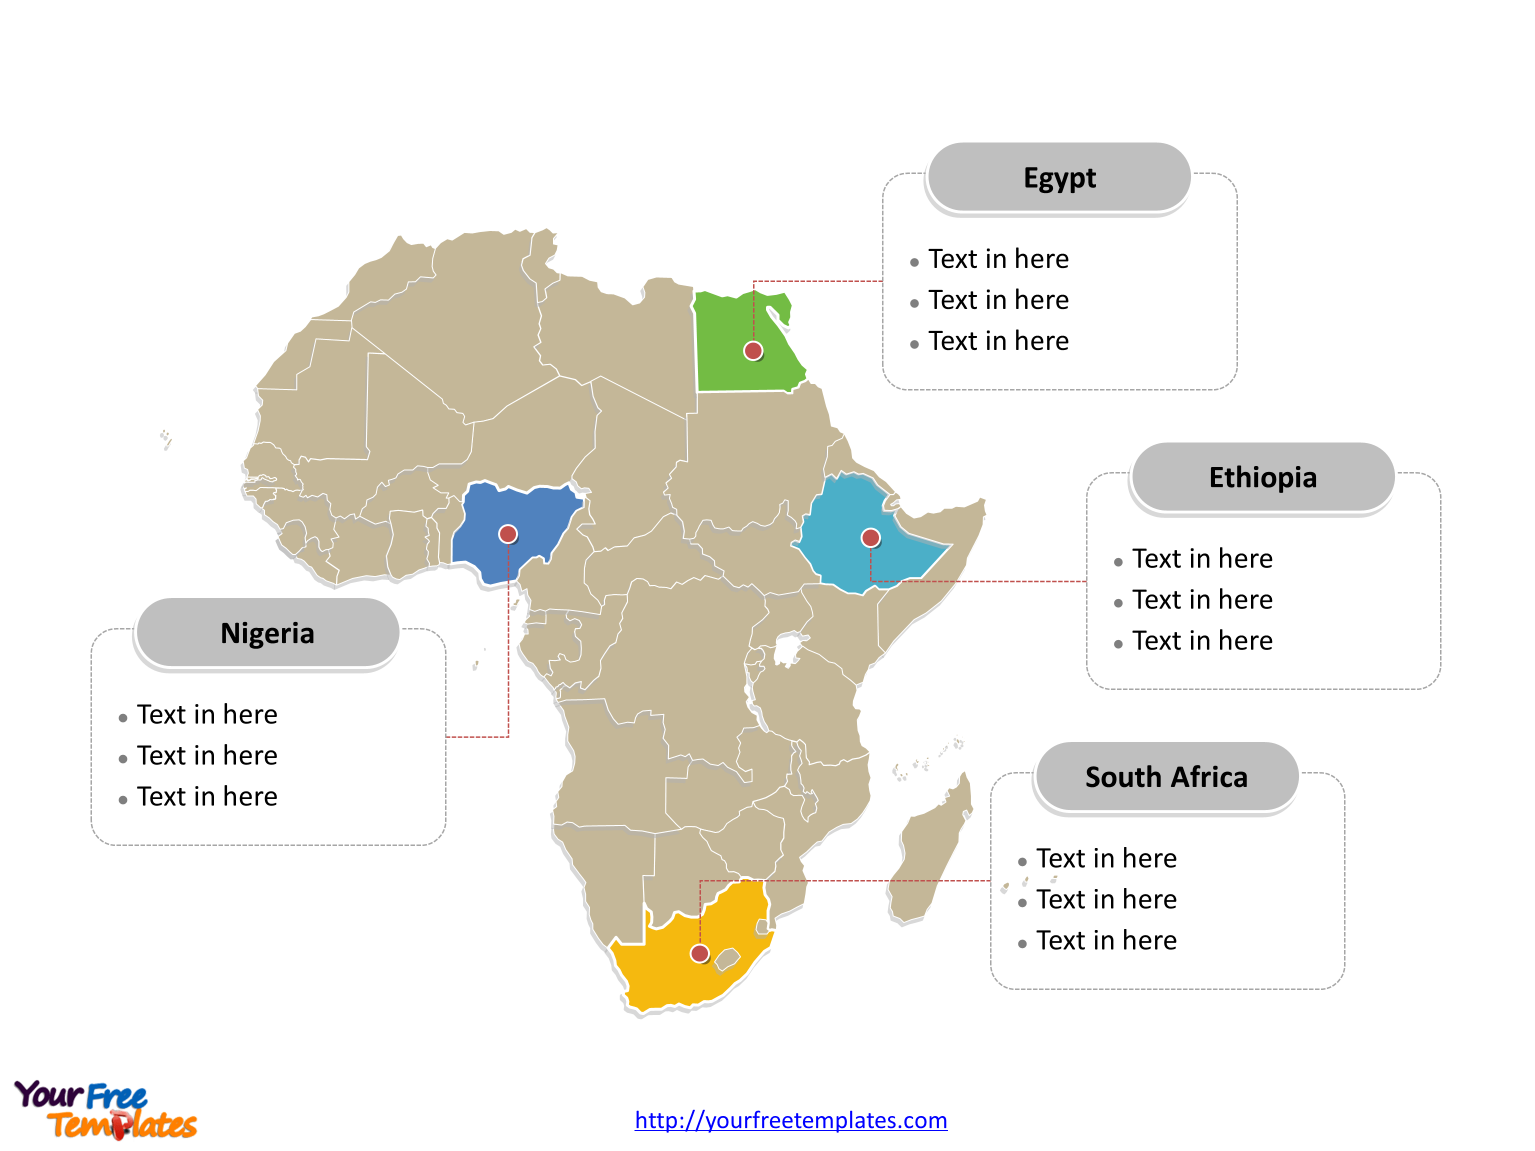 Map of Africa with political division and major Countries labeled on the Africa map free templates, or African continent map